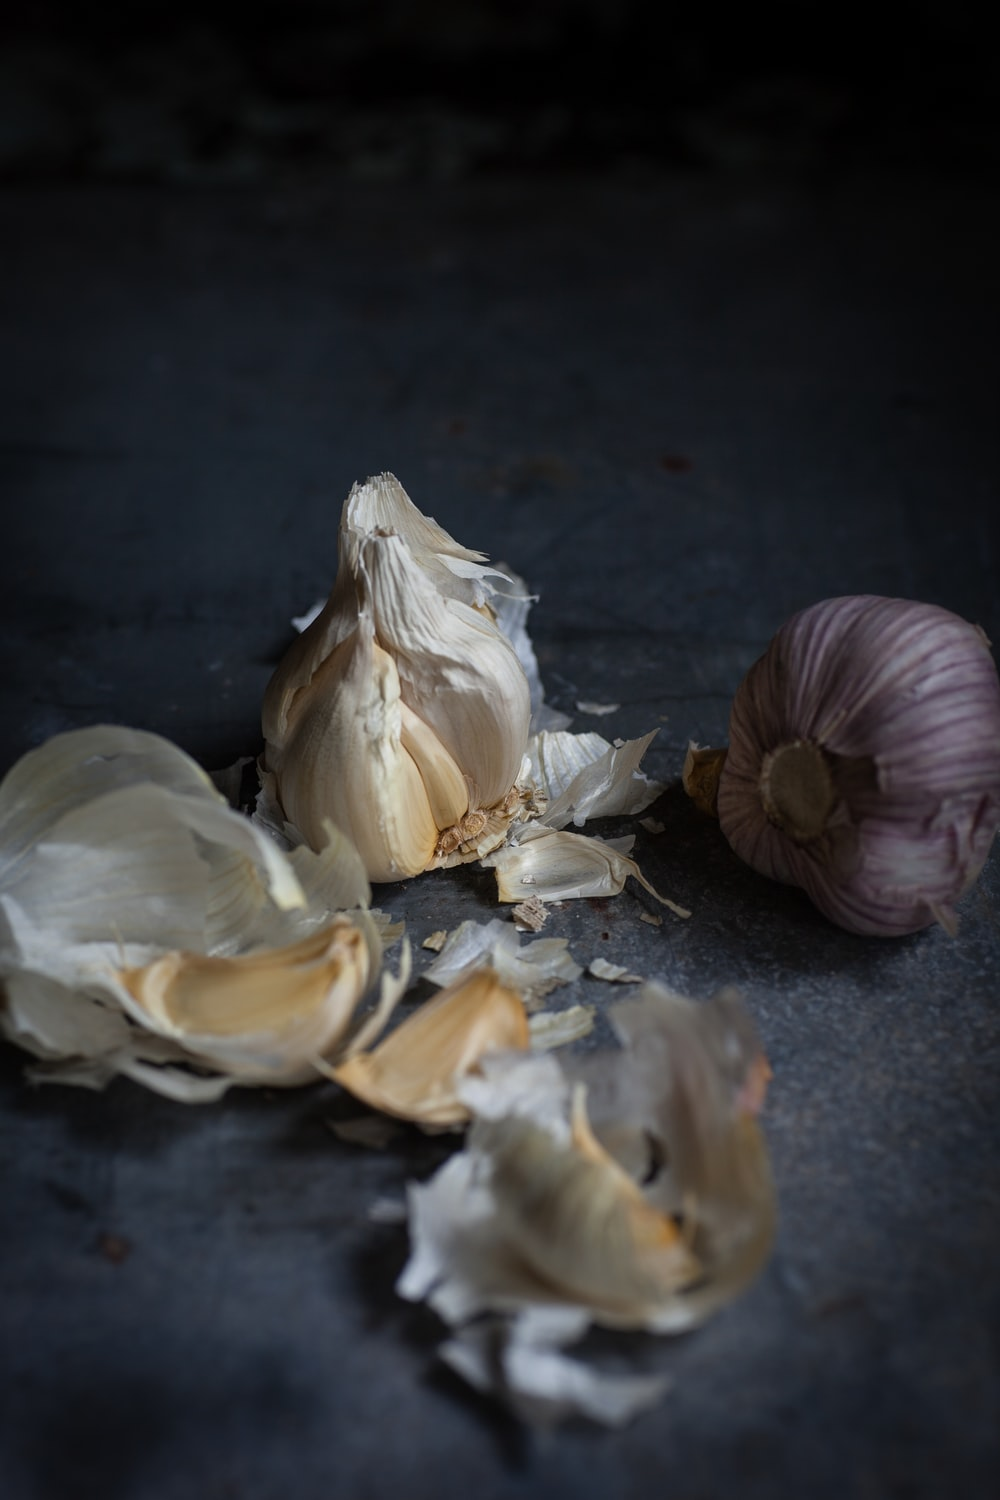 two close-up photography of garlic gloves on gray surface